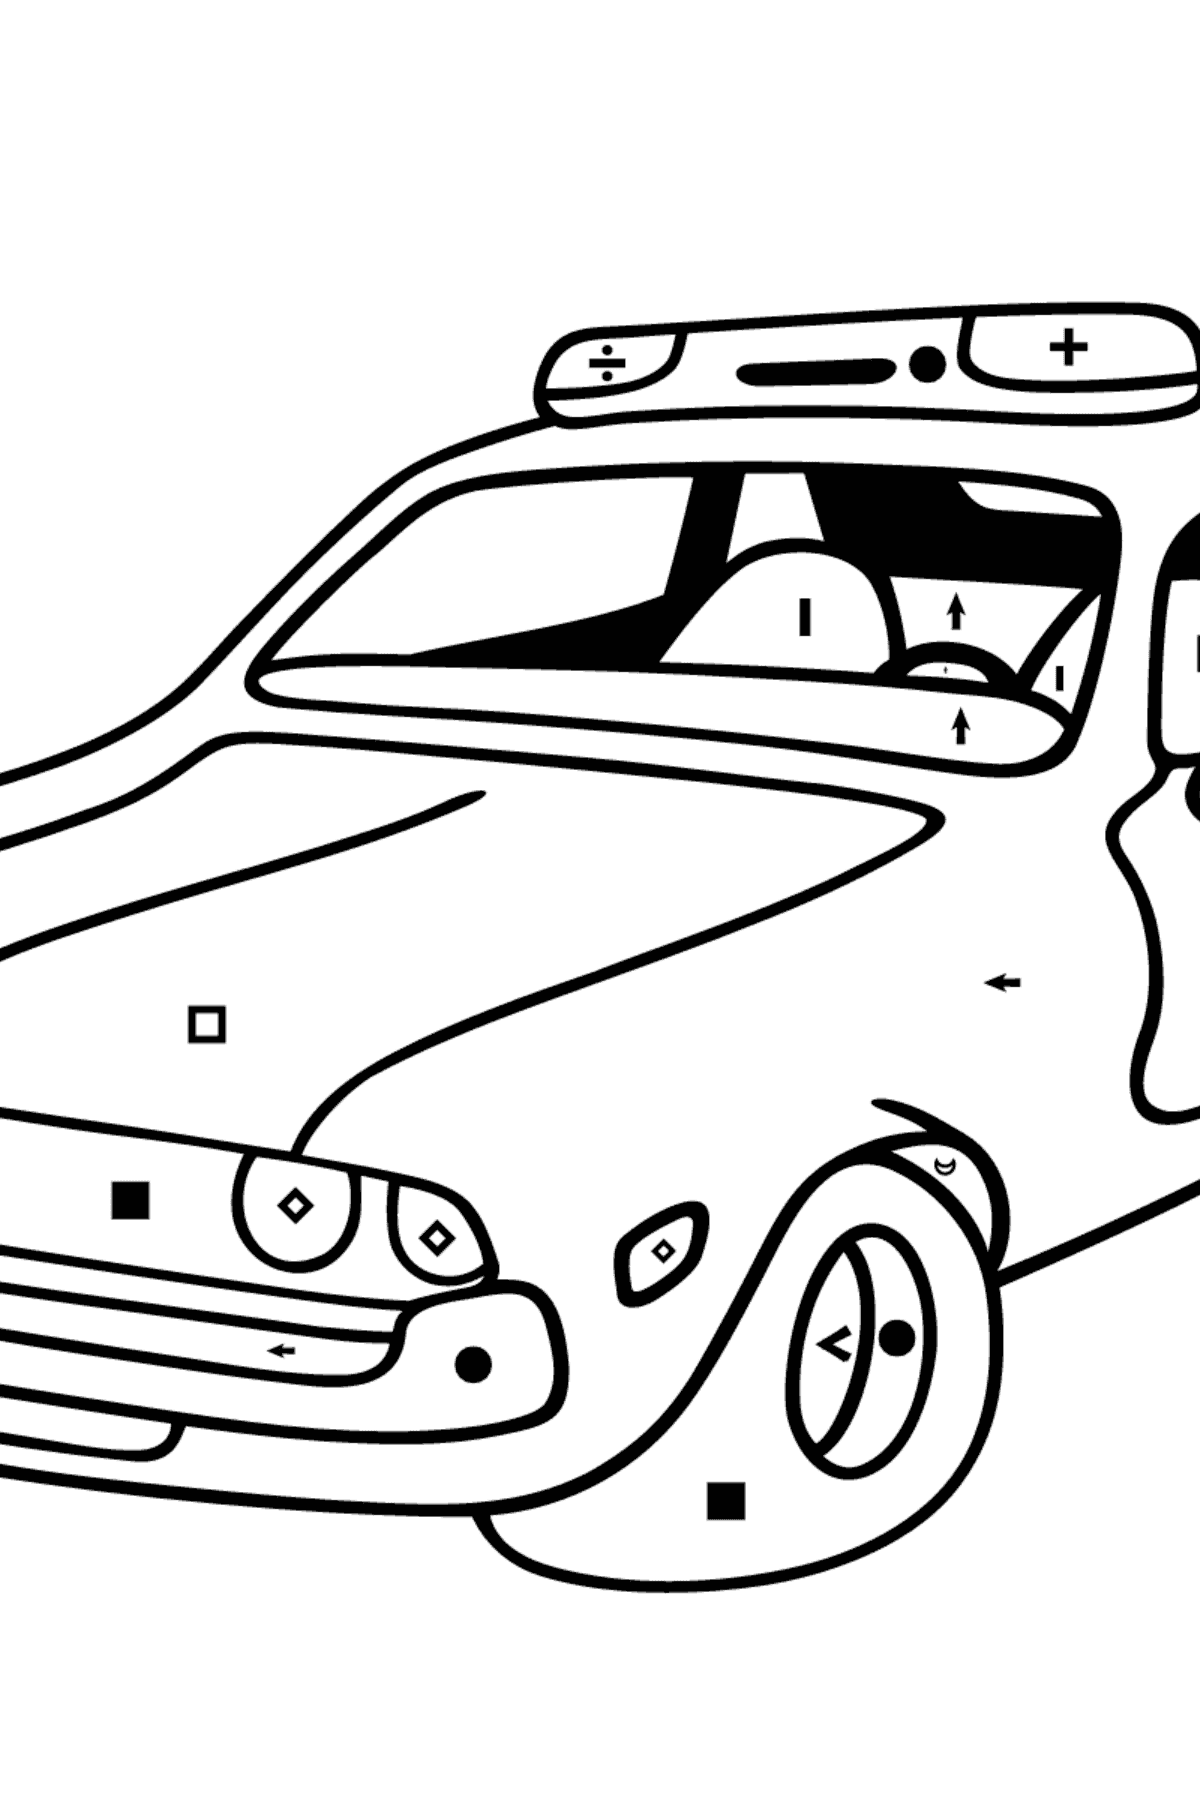 Coloring Page - A Red and White Police Car for Children  - Color by Special Symbols